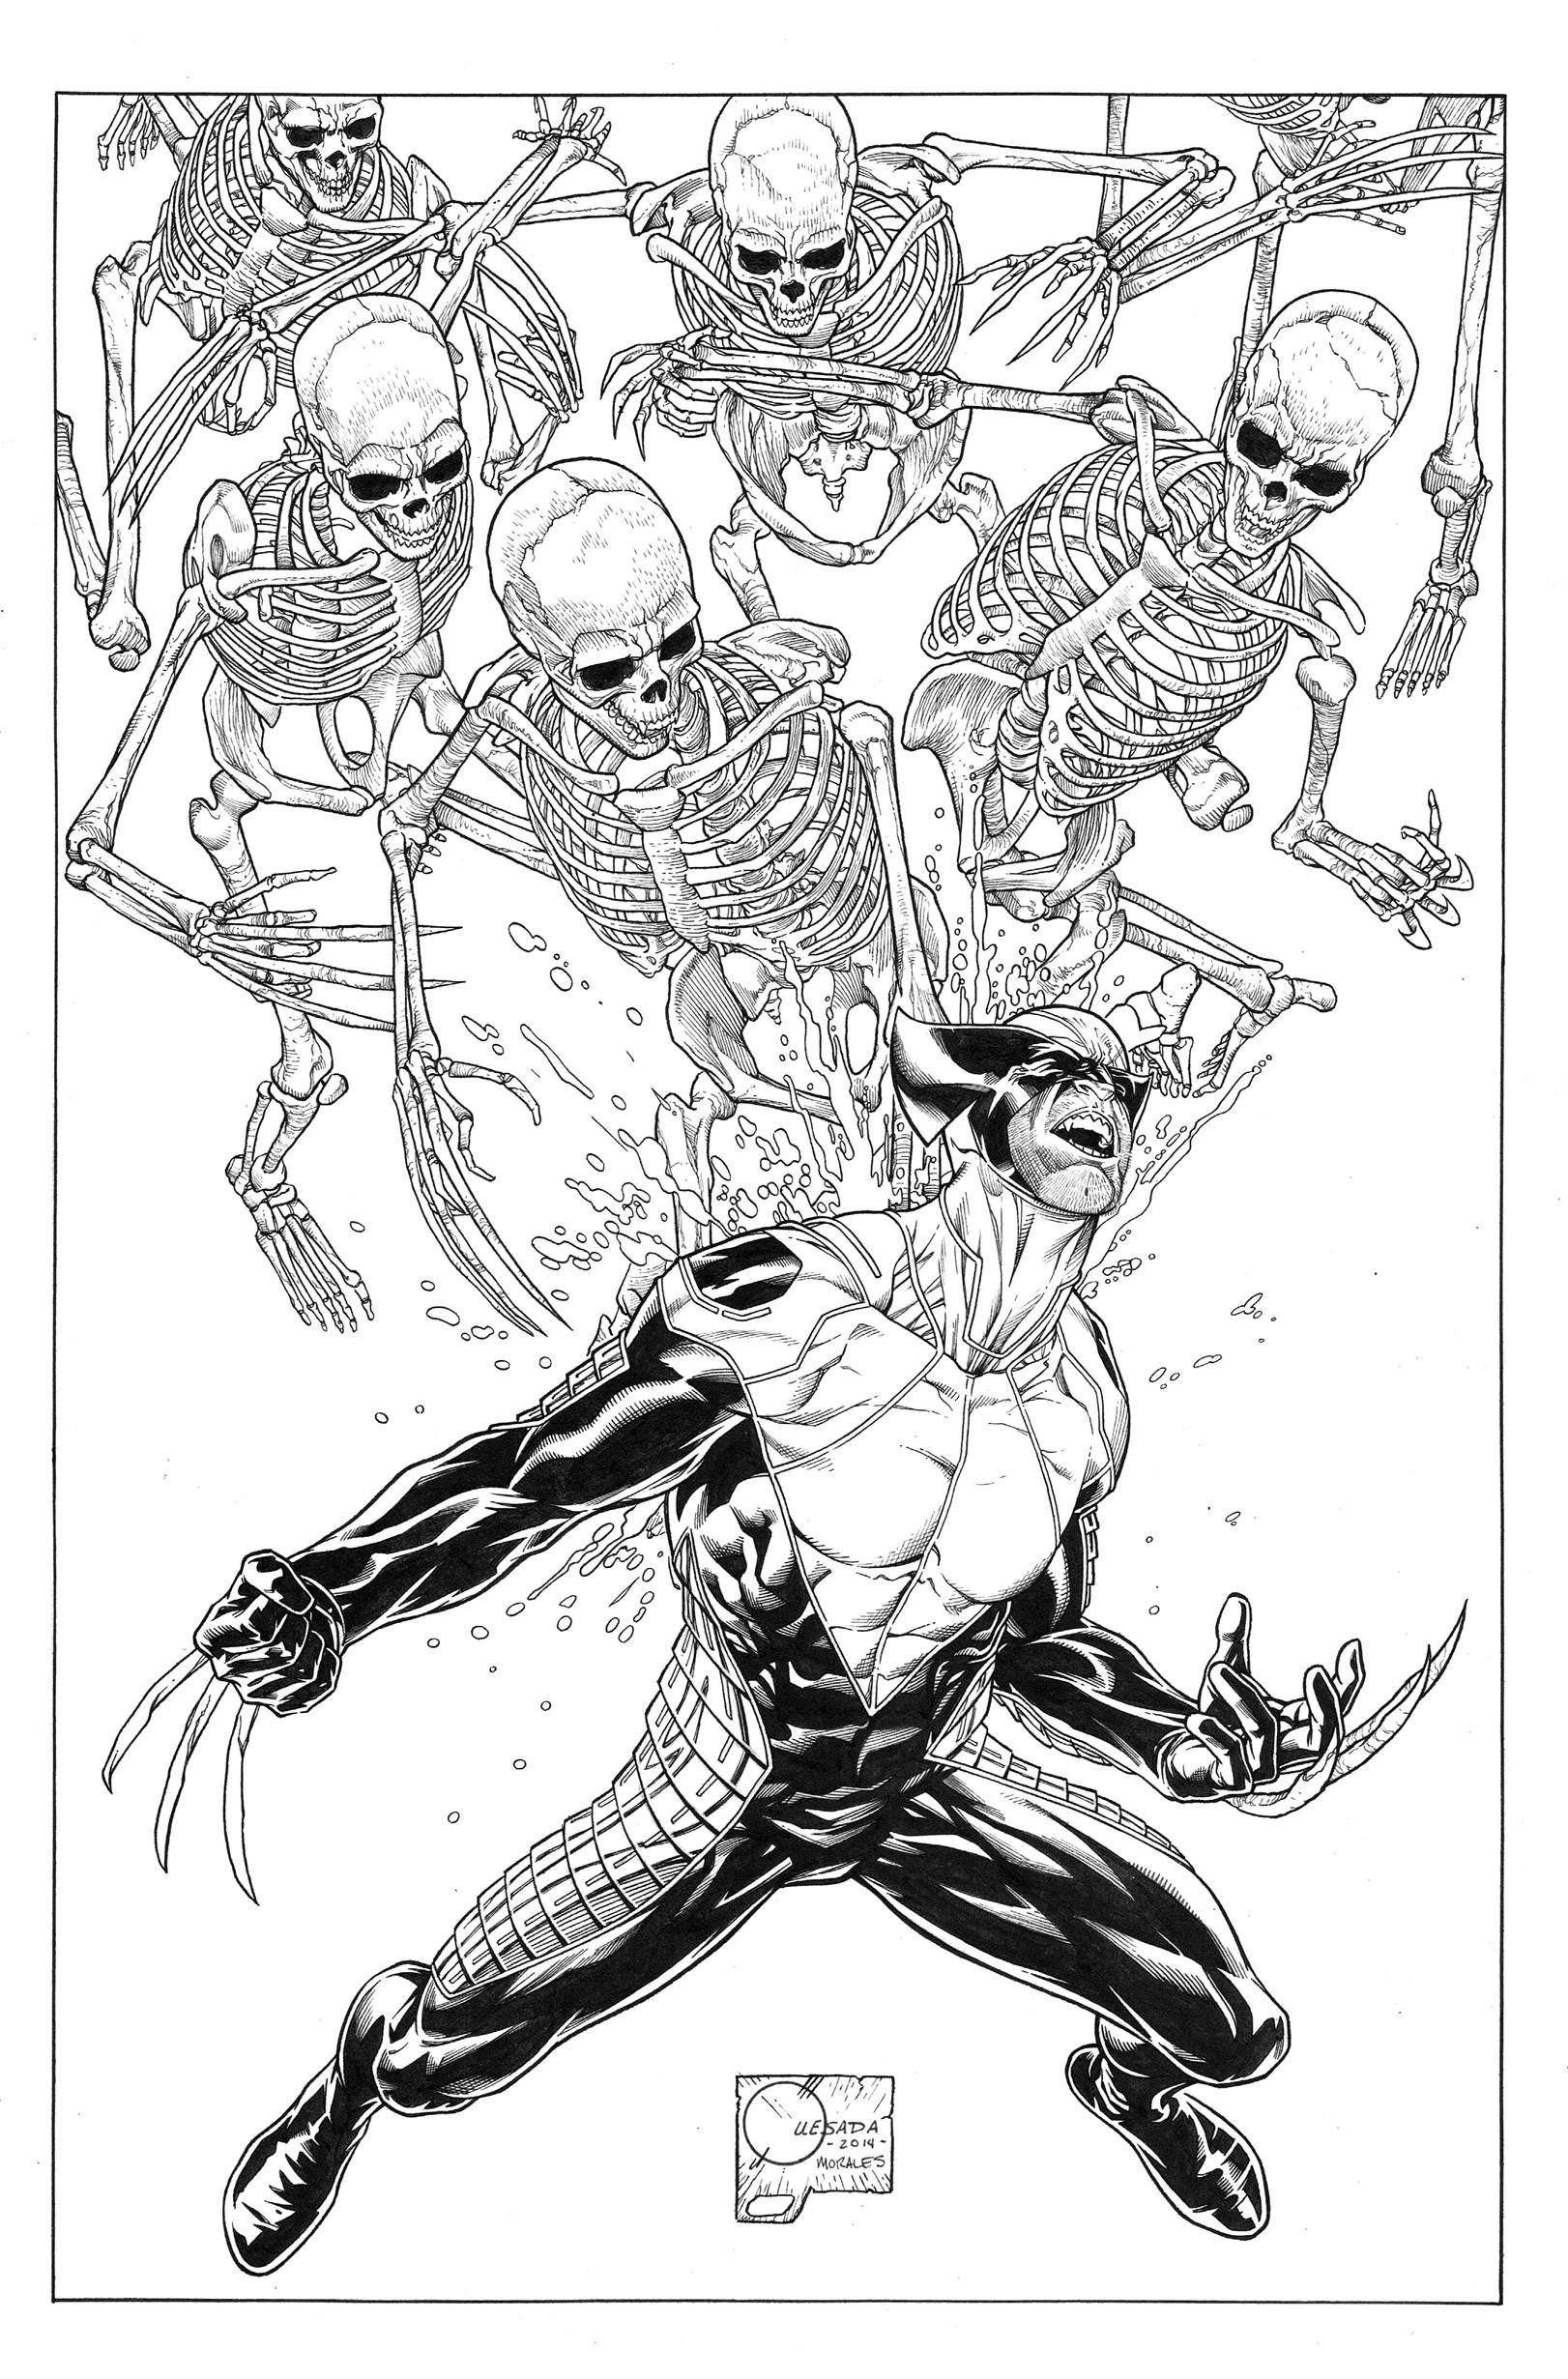 DEATH OF WOLVERINE #1 (OF 4) QUESADA SKETCH VAR